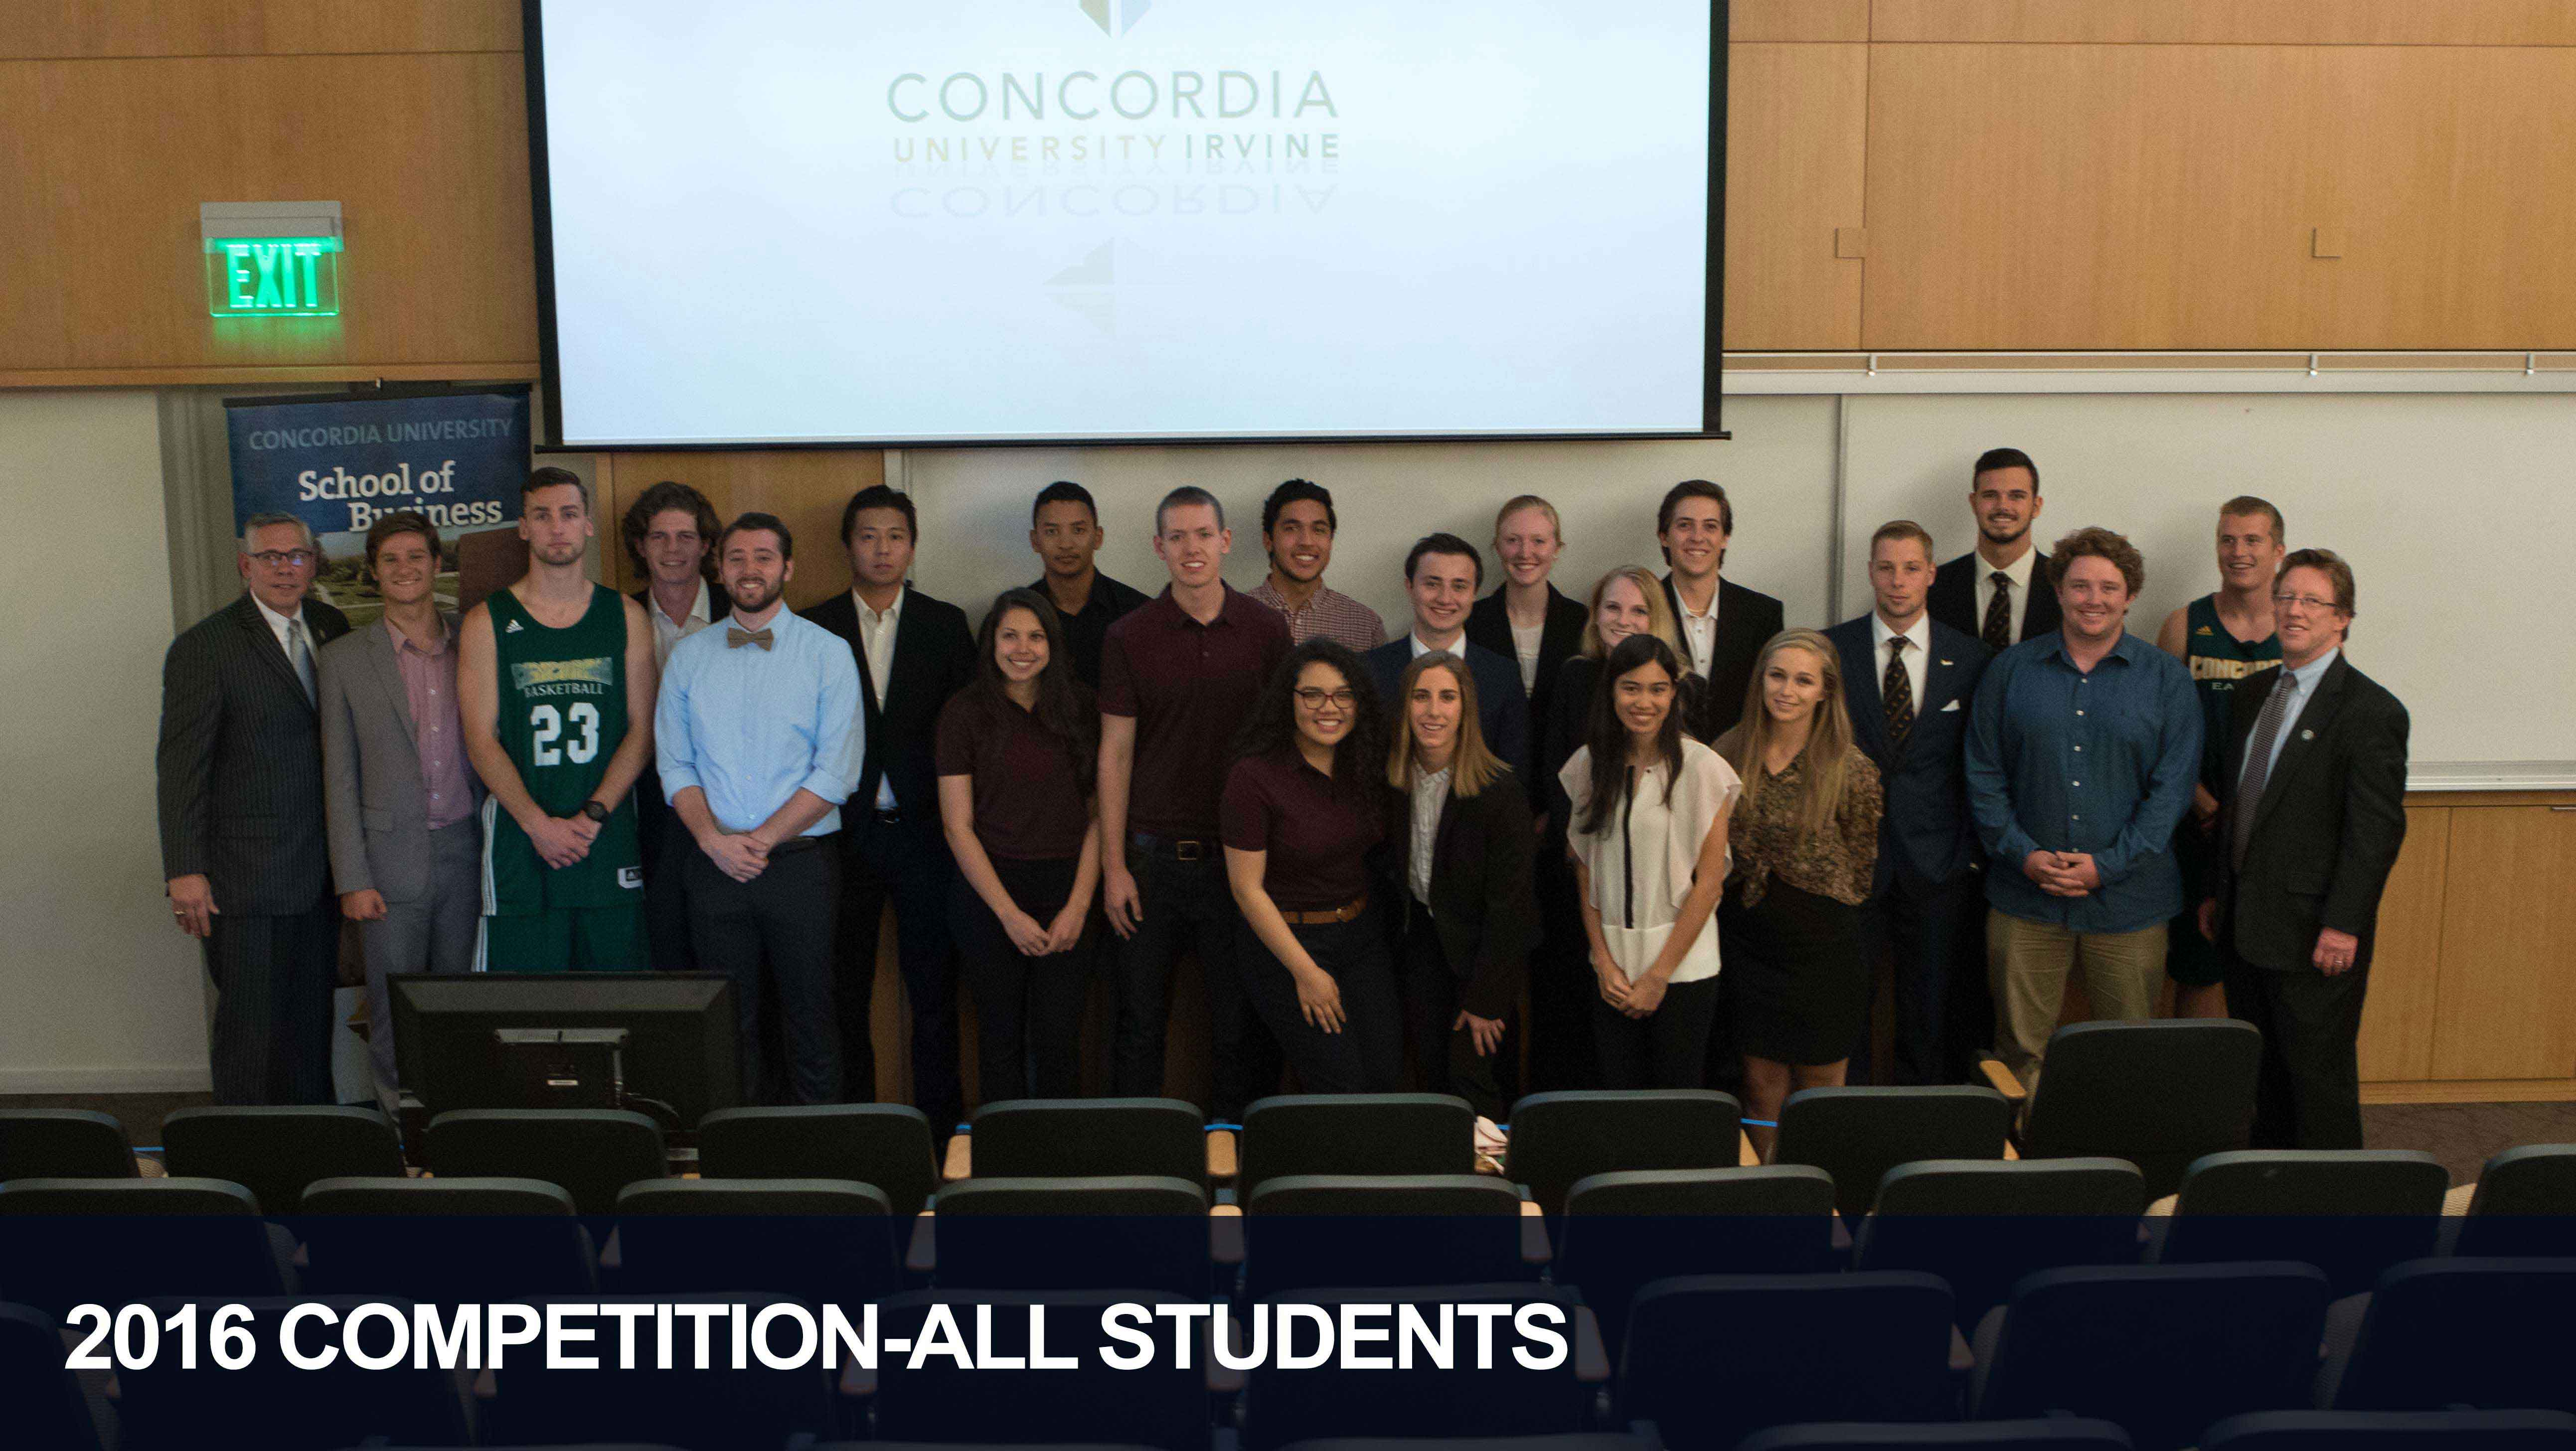 The Students that Competed in the 2016 Competition